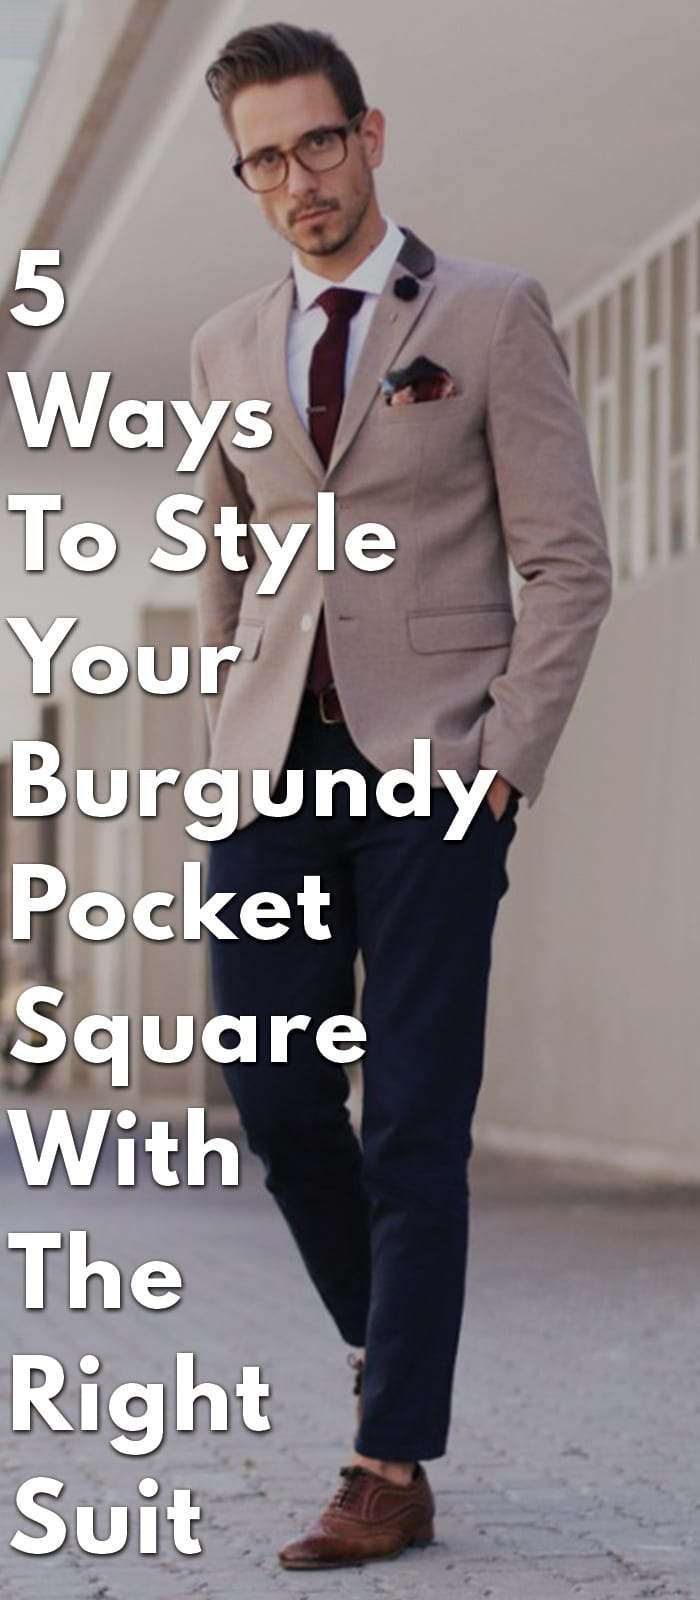 5-Ways-To-Style-Your-Burgundy-Pocket-Square-With-The-Right-Suit